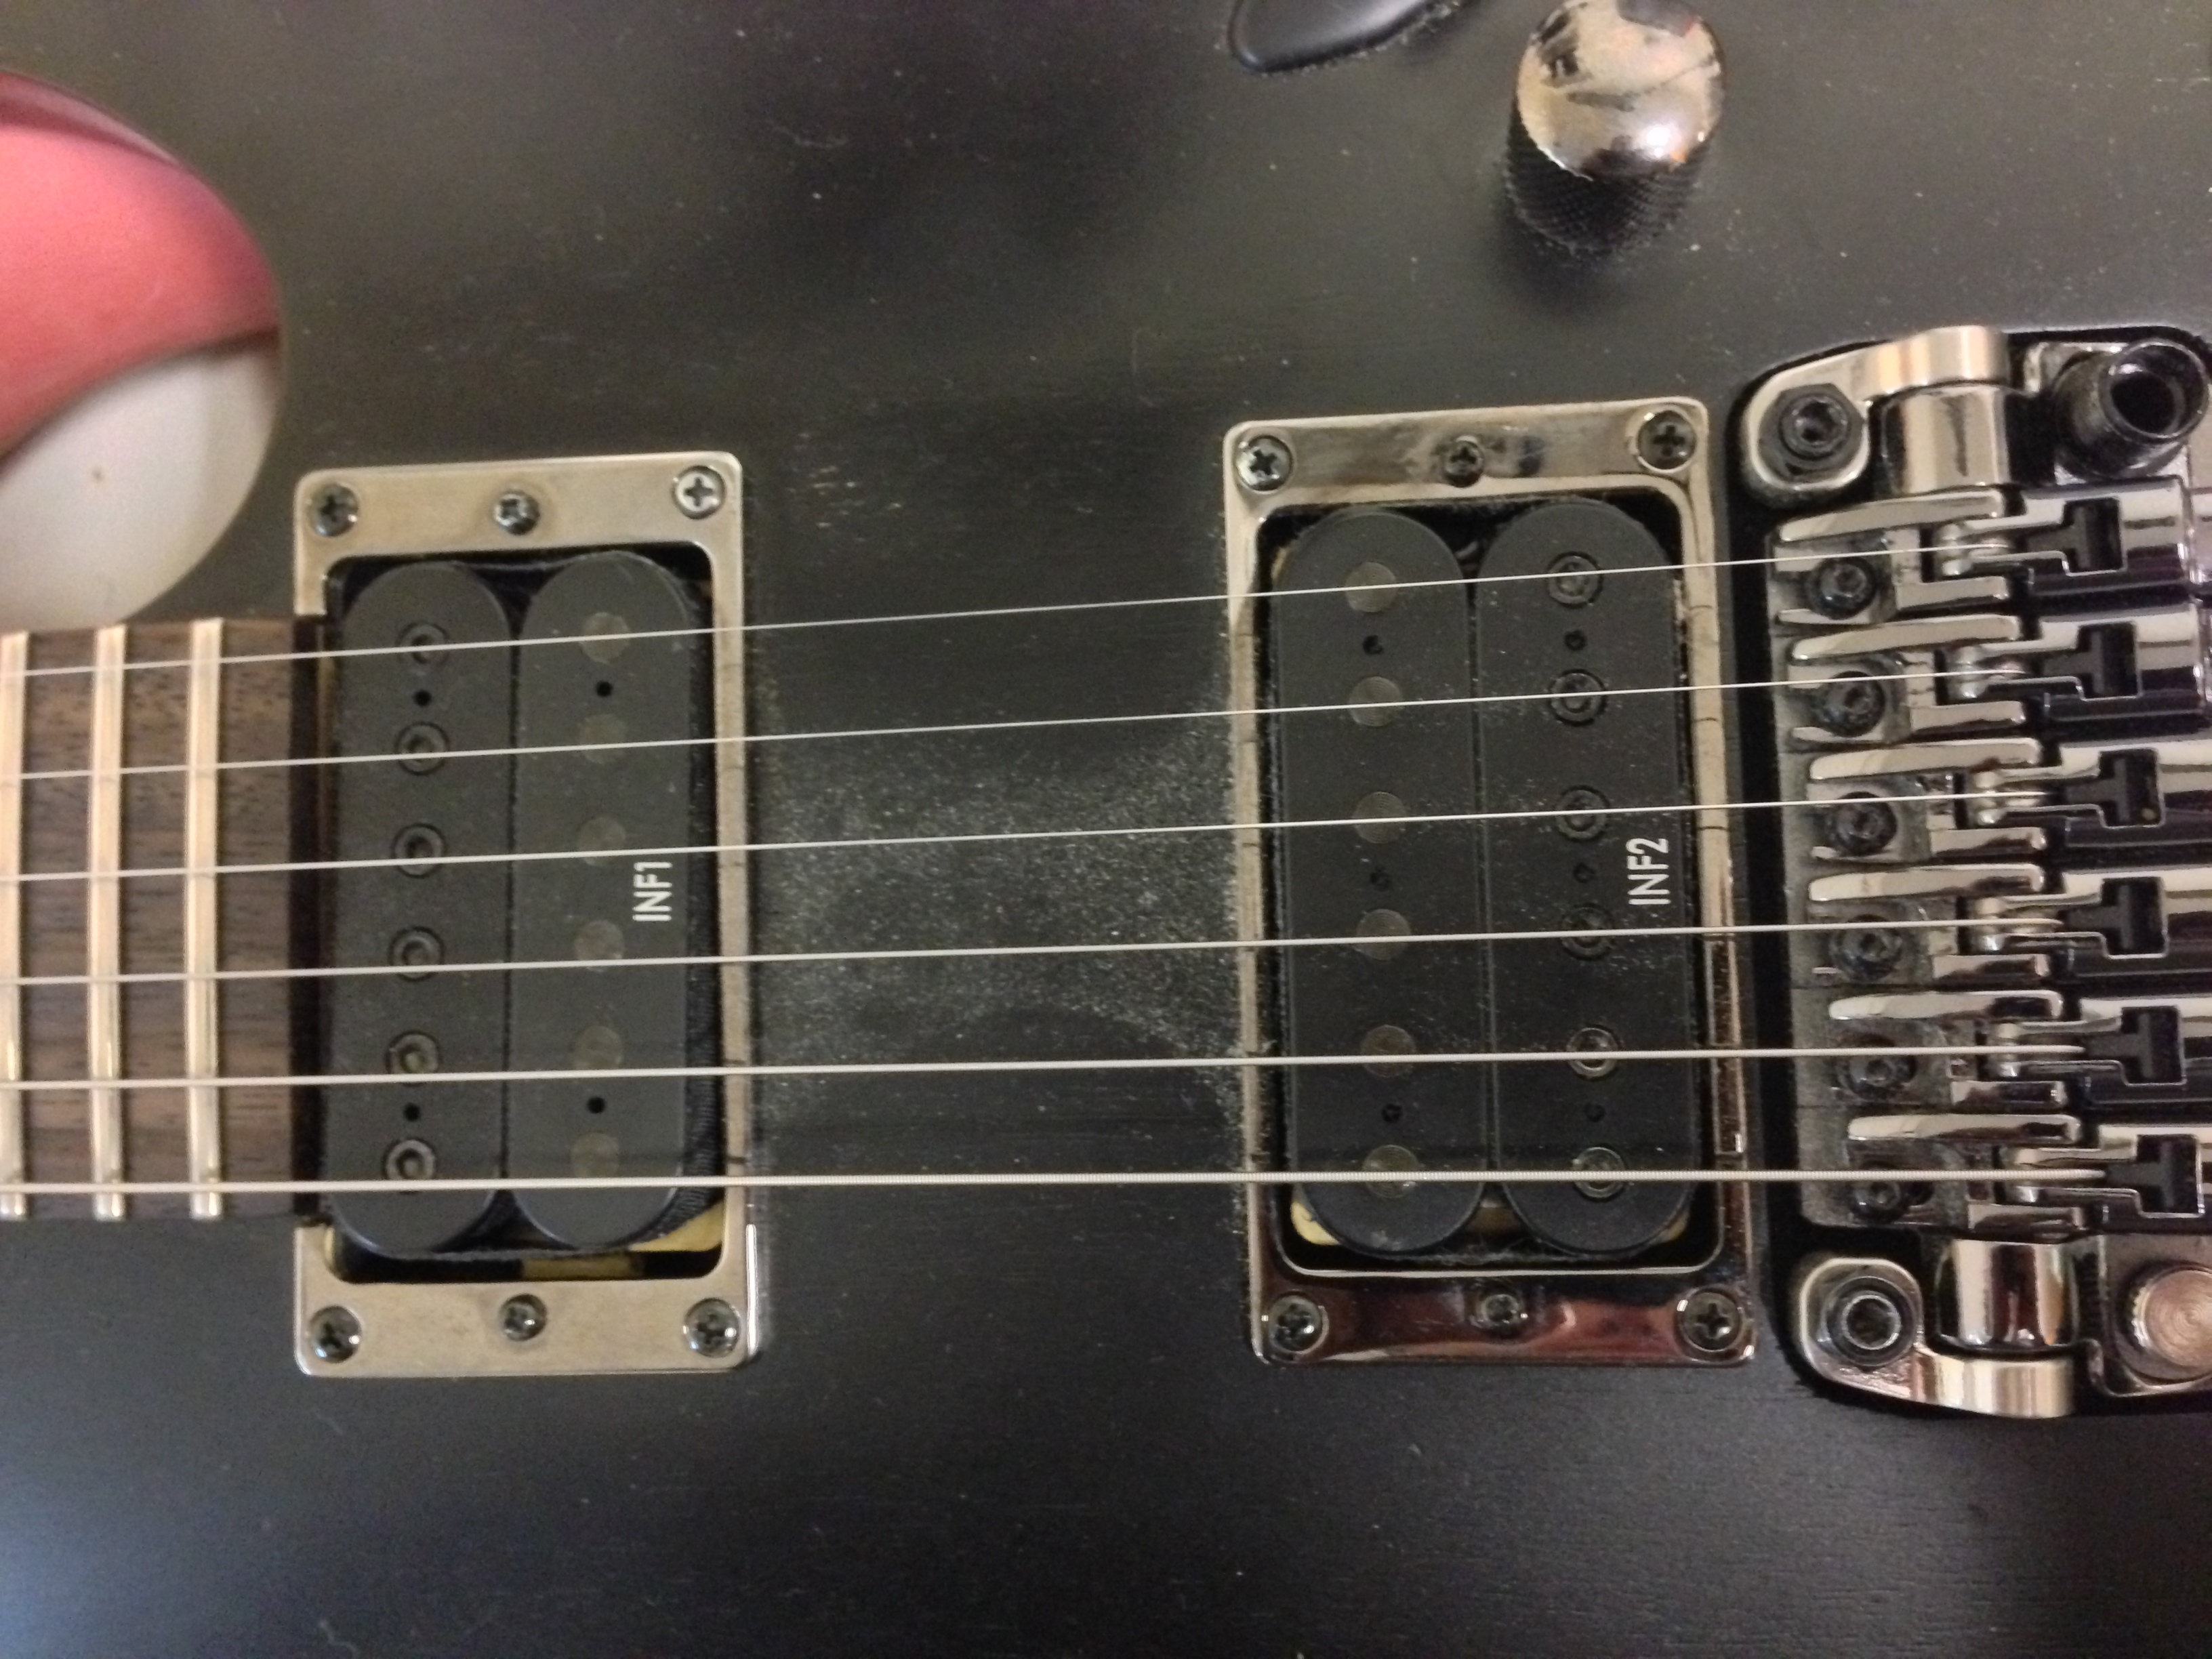 Changing The Pickups In An Ibanez S420 Guitar Inability To Melody Maker Wiring Diagrams 2 Original Cavity